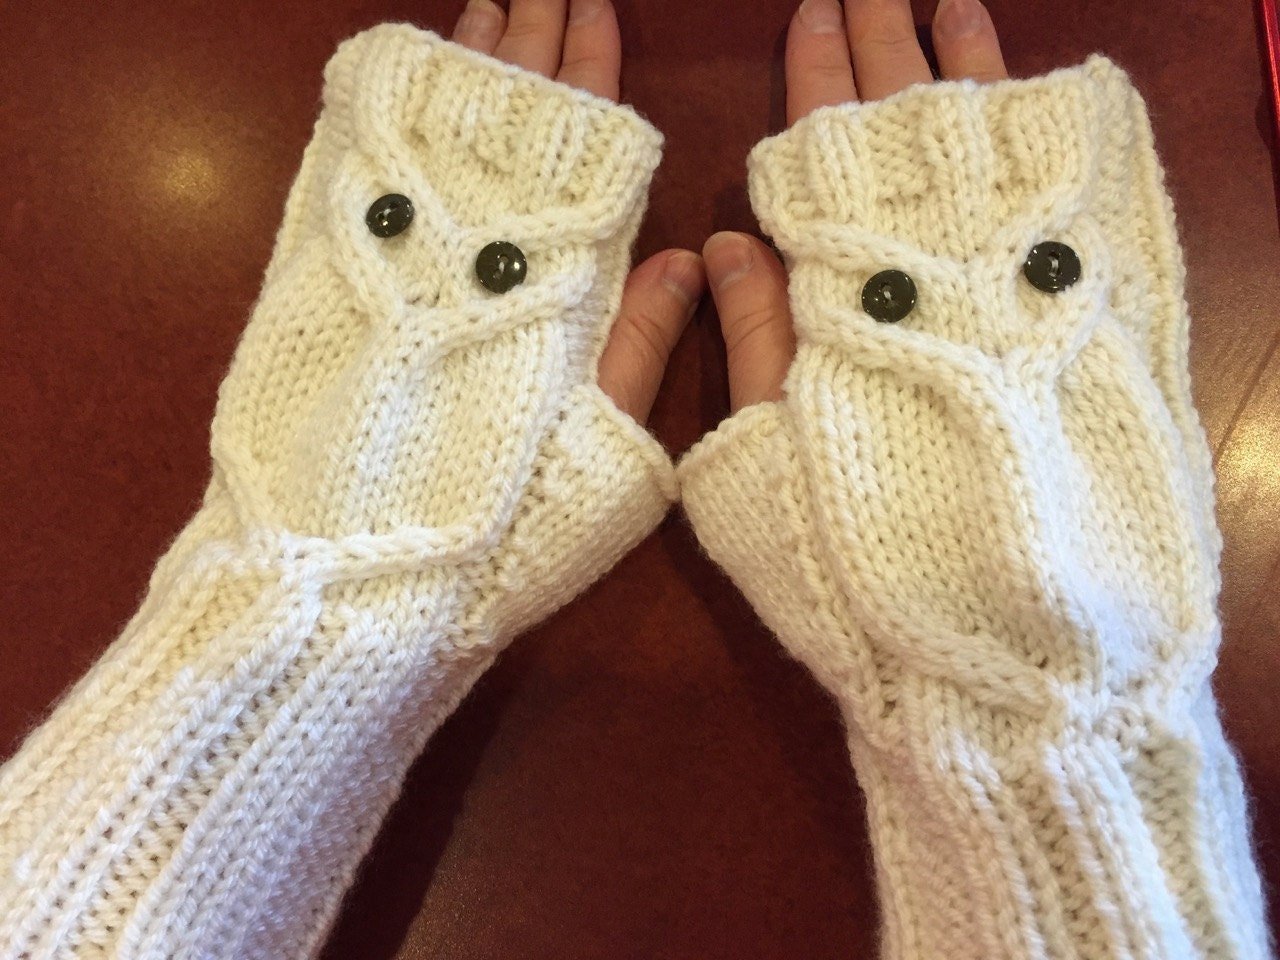 Fingerless Gloves Knitting Pattern Double Pointed Needles : Adult Owl Fingerless Gloves Knitting Pattern by GinasiKnitShop